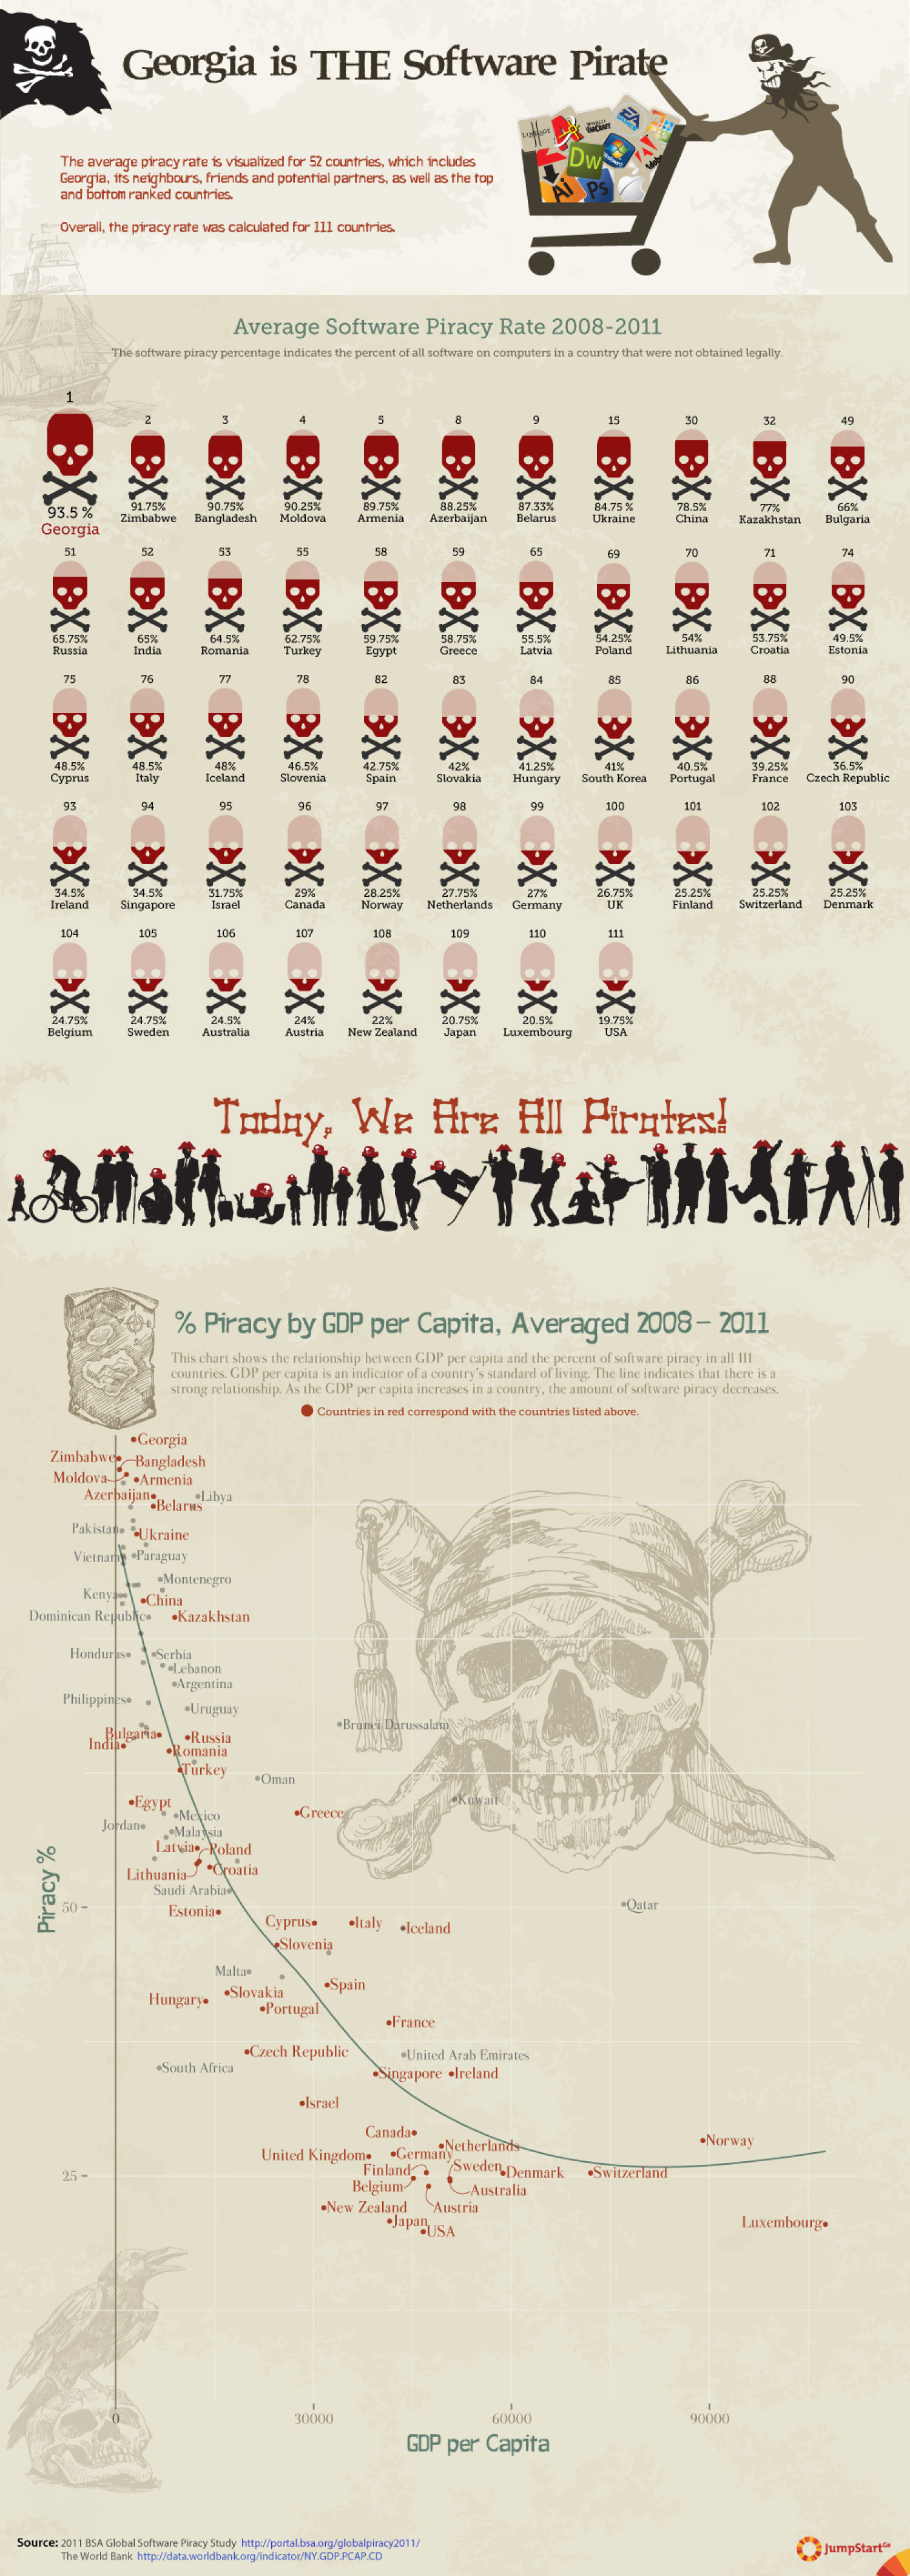 Georgia is THE Software Pirate Infographic